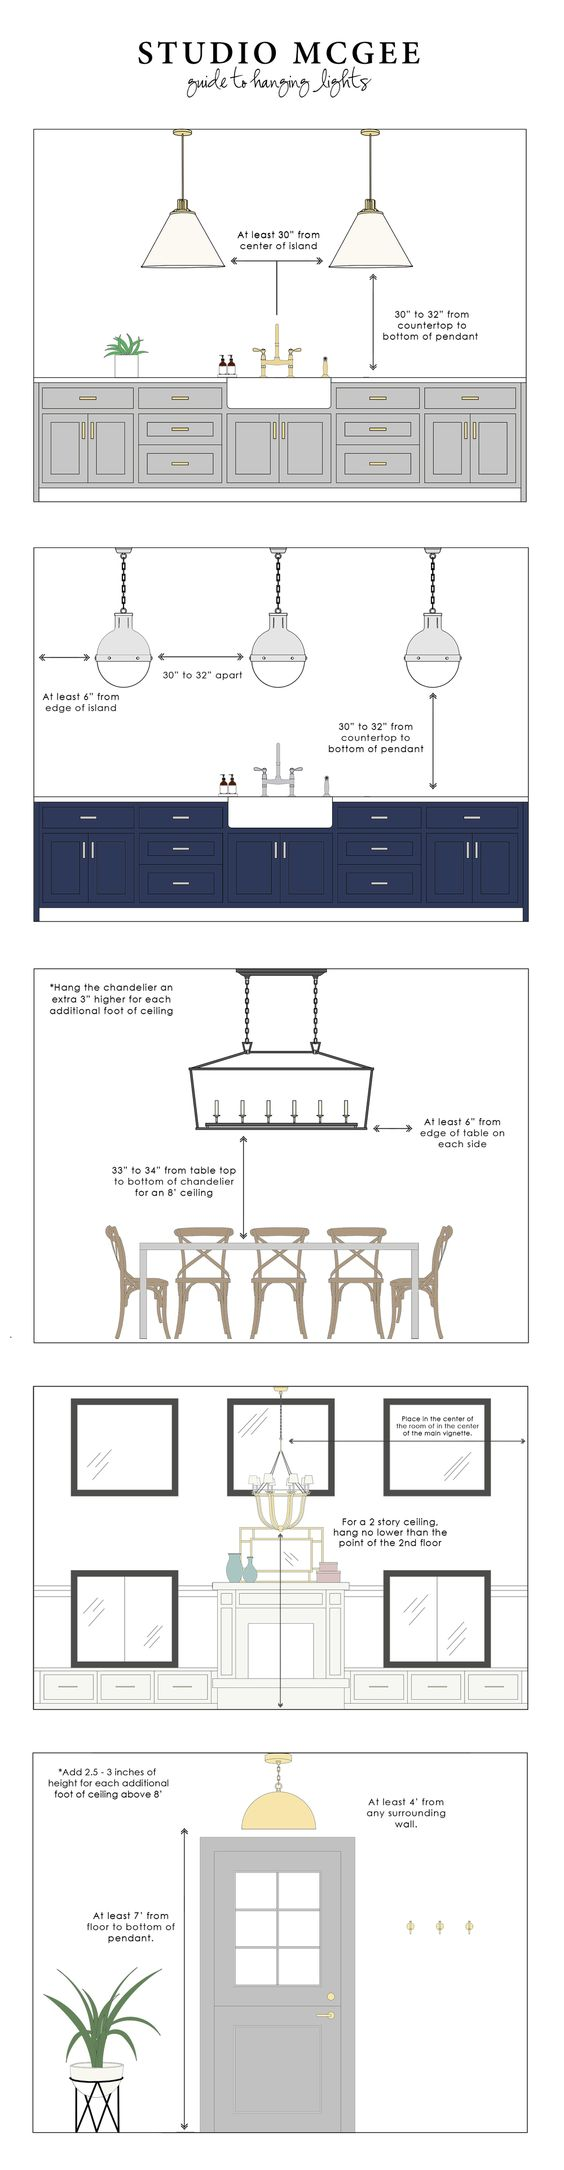 Studio mcgee guide to hanging lights home decor ideas for Interior lighting design guide